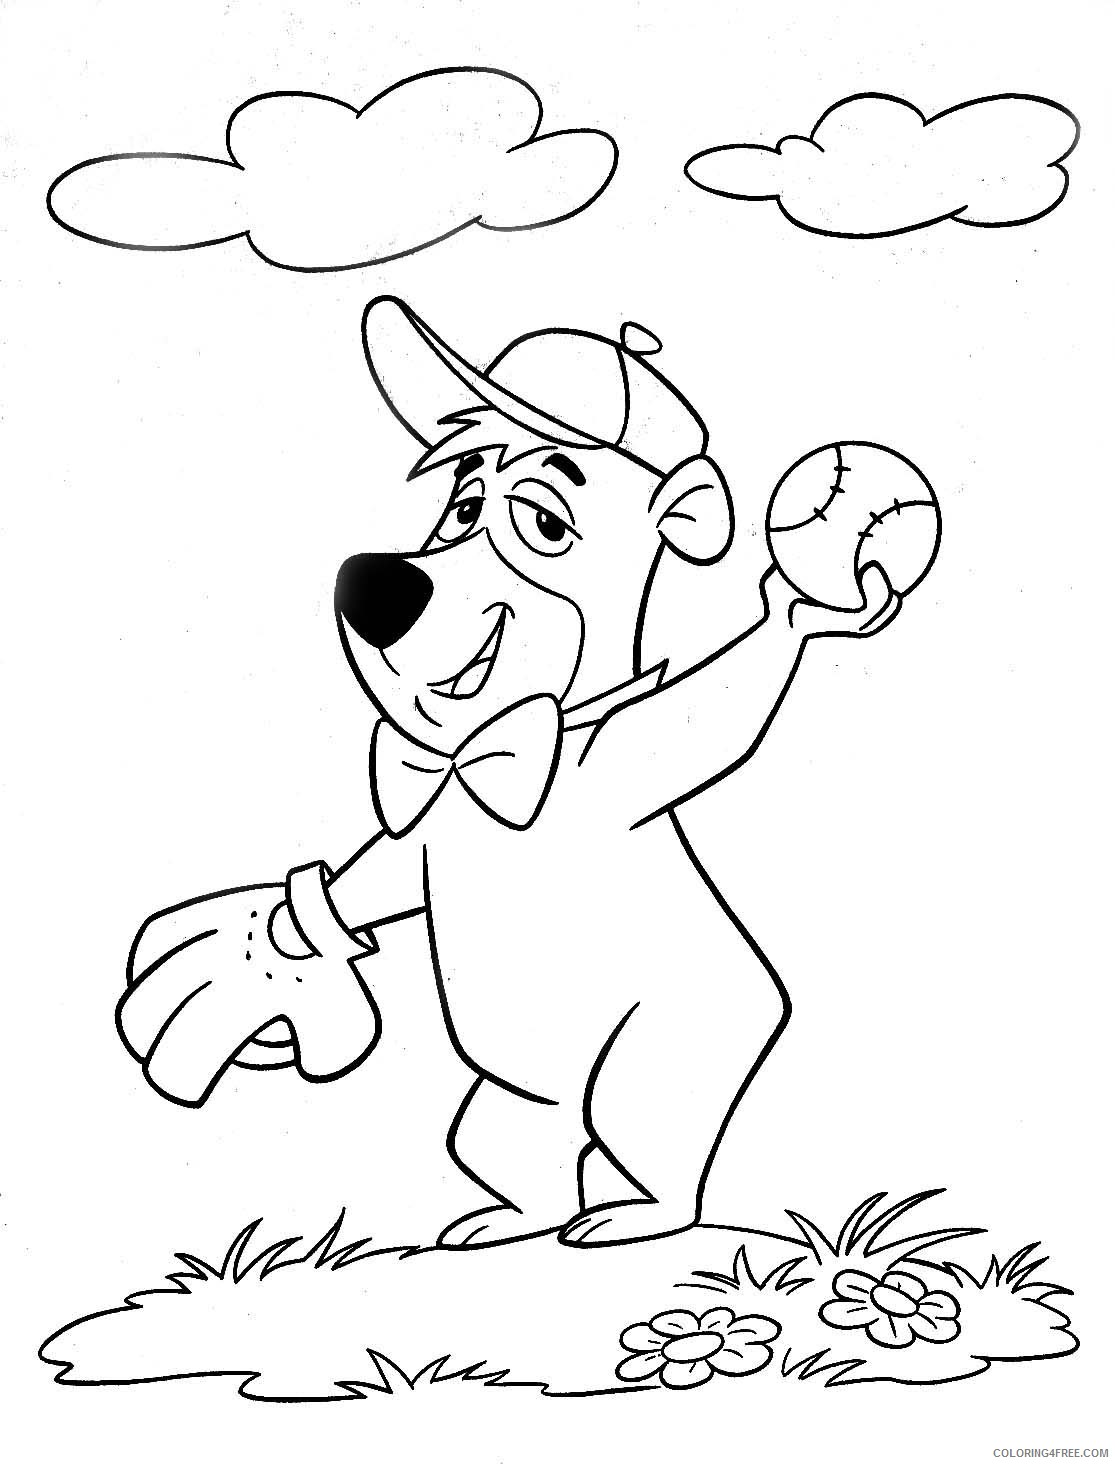 yogi bear boo boo bear coloring pages for kids printable download rzOHSp coloring